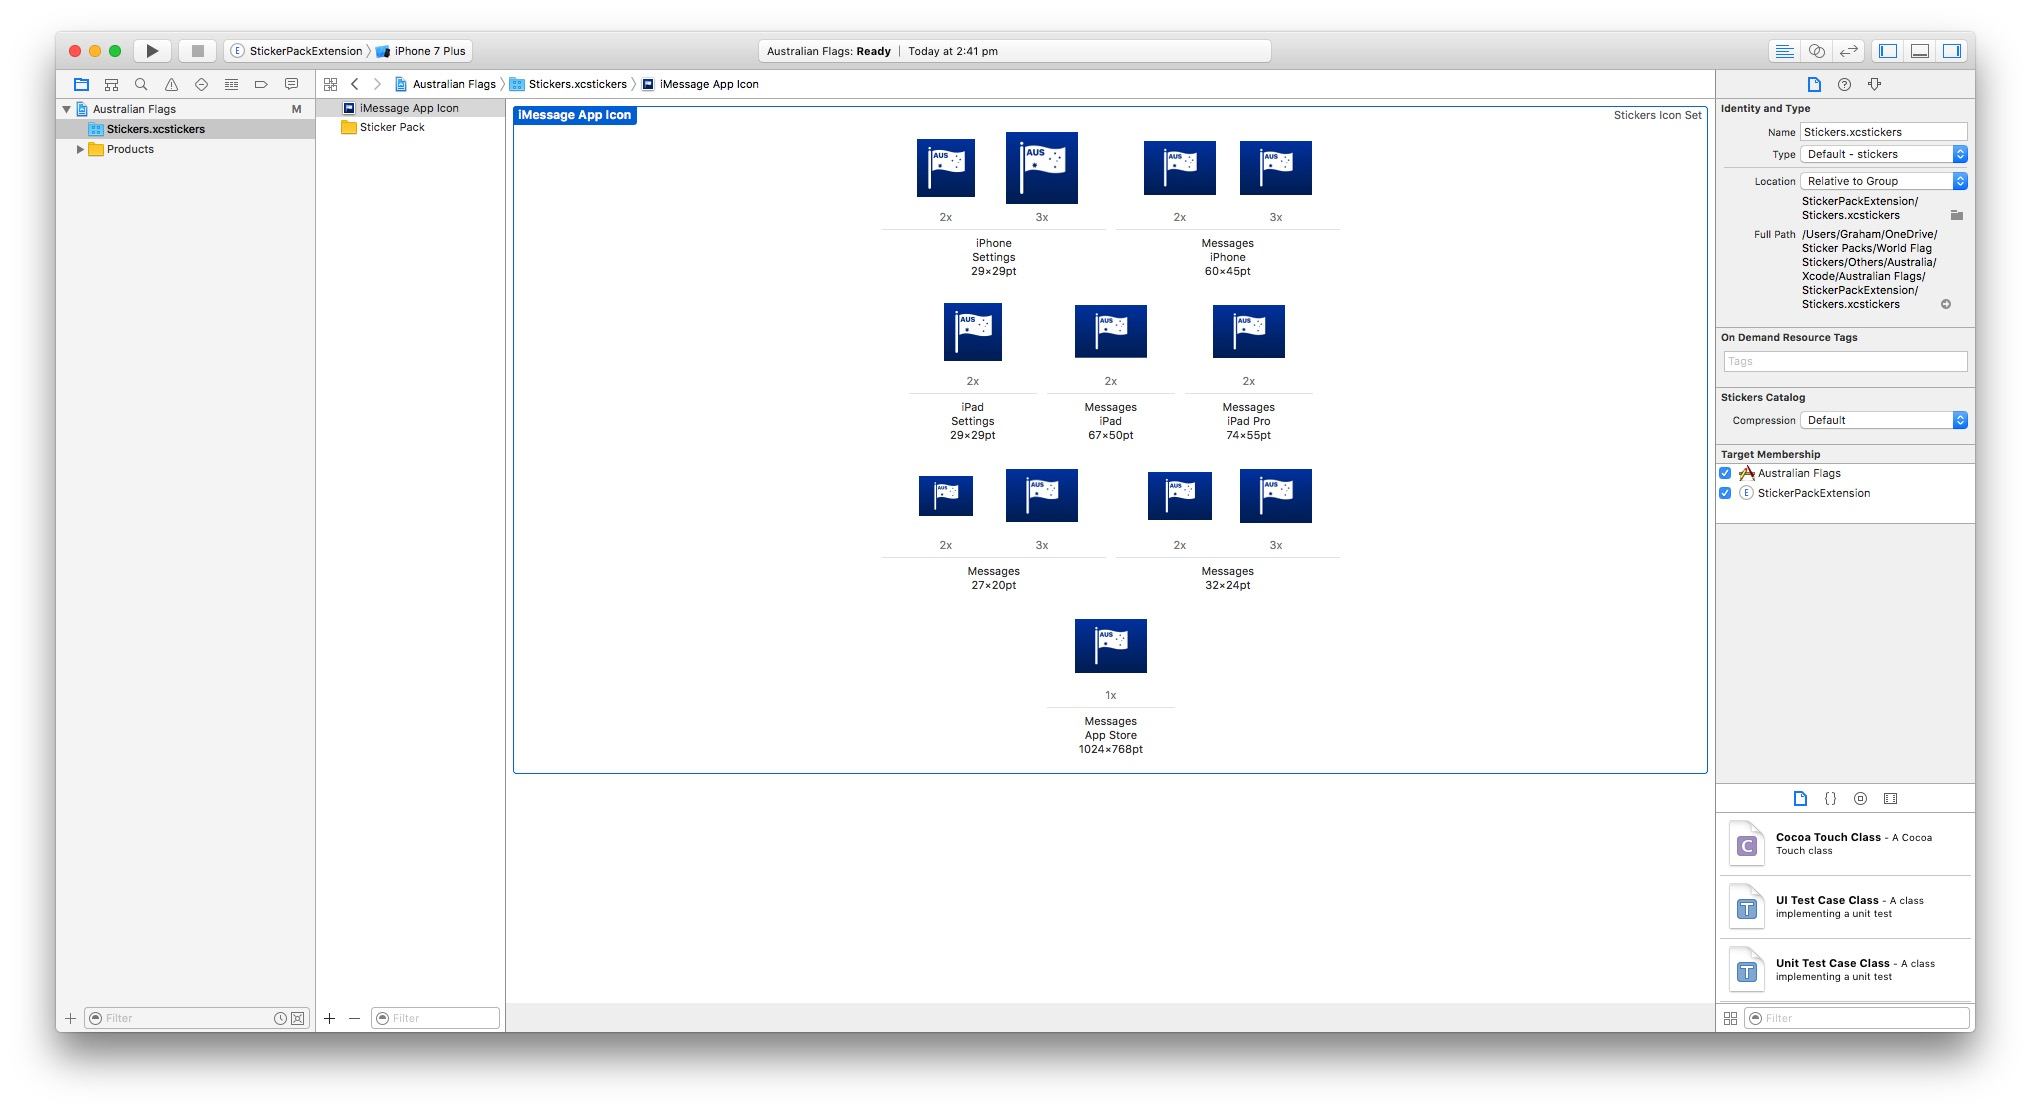 This is what Xcode should look like once you've inserted all the app icons.